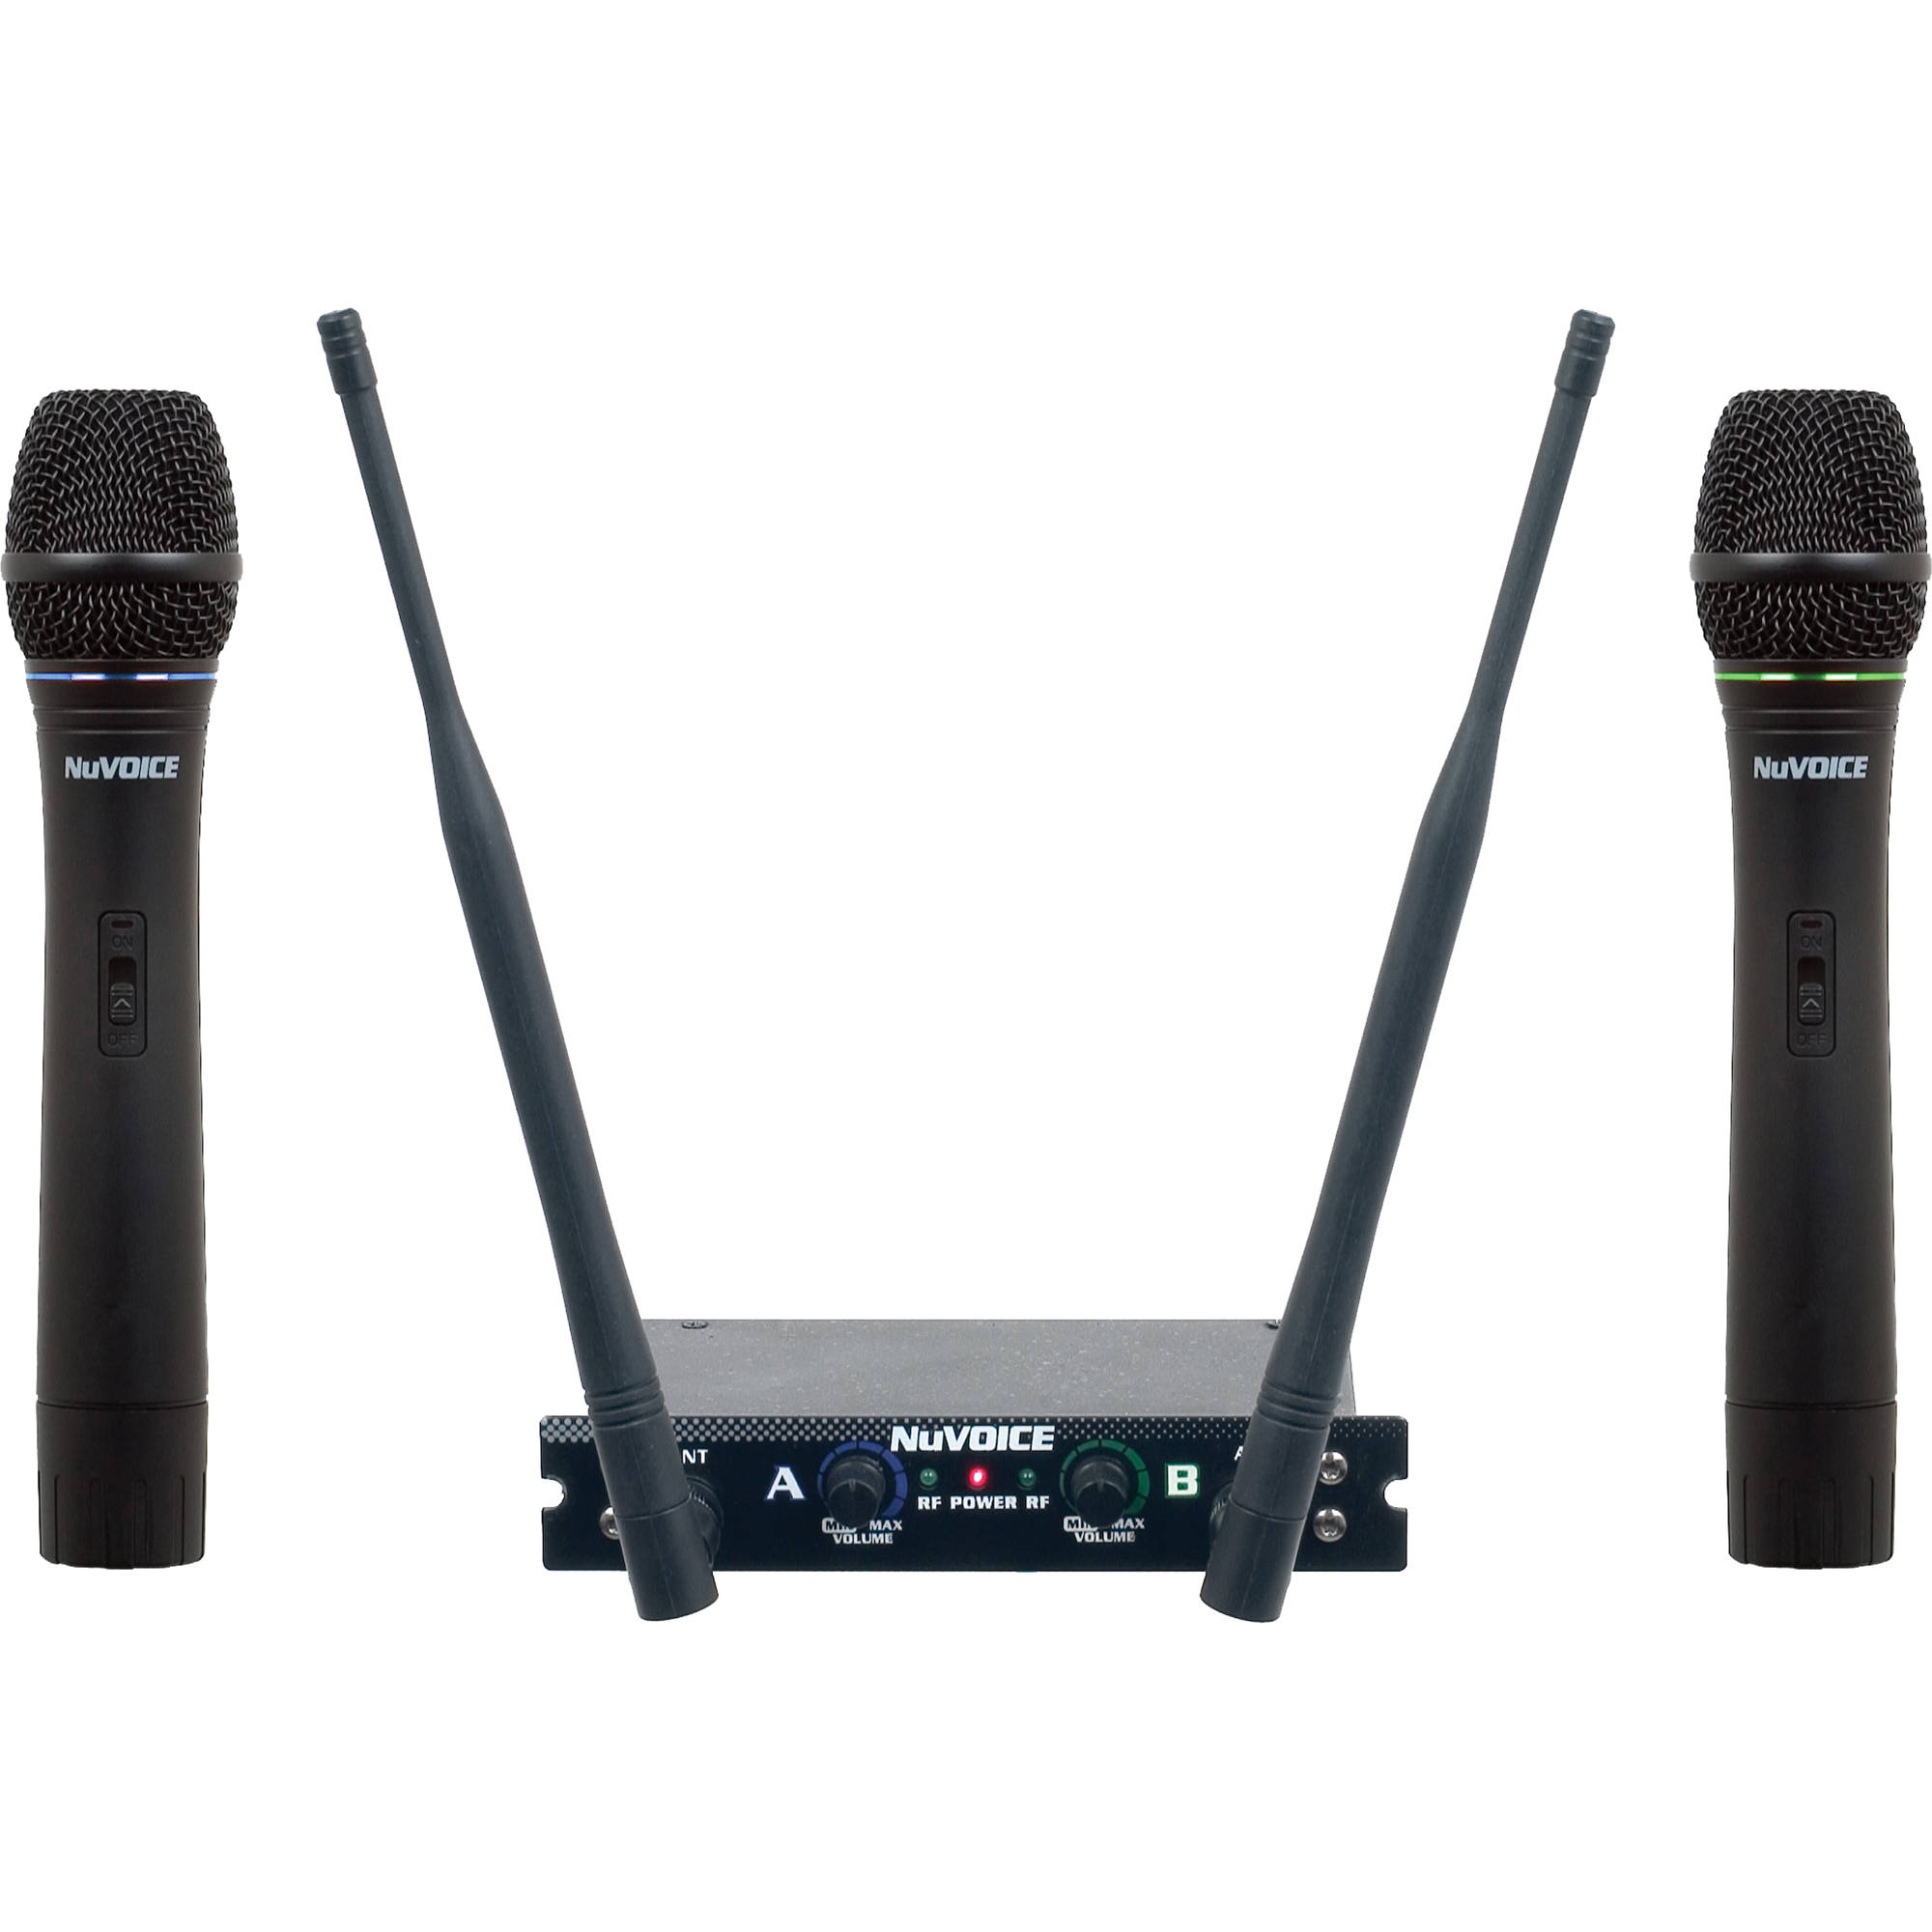 nuvoice v 280 dual channel vhf wireless microphone system v 280. Black Bedroom Furniture Sets. Home Design Ideas